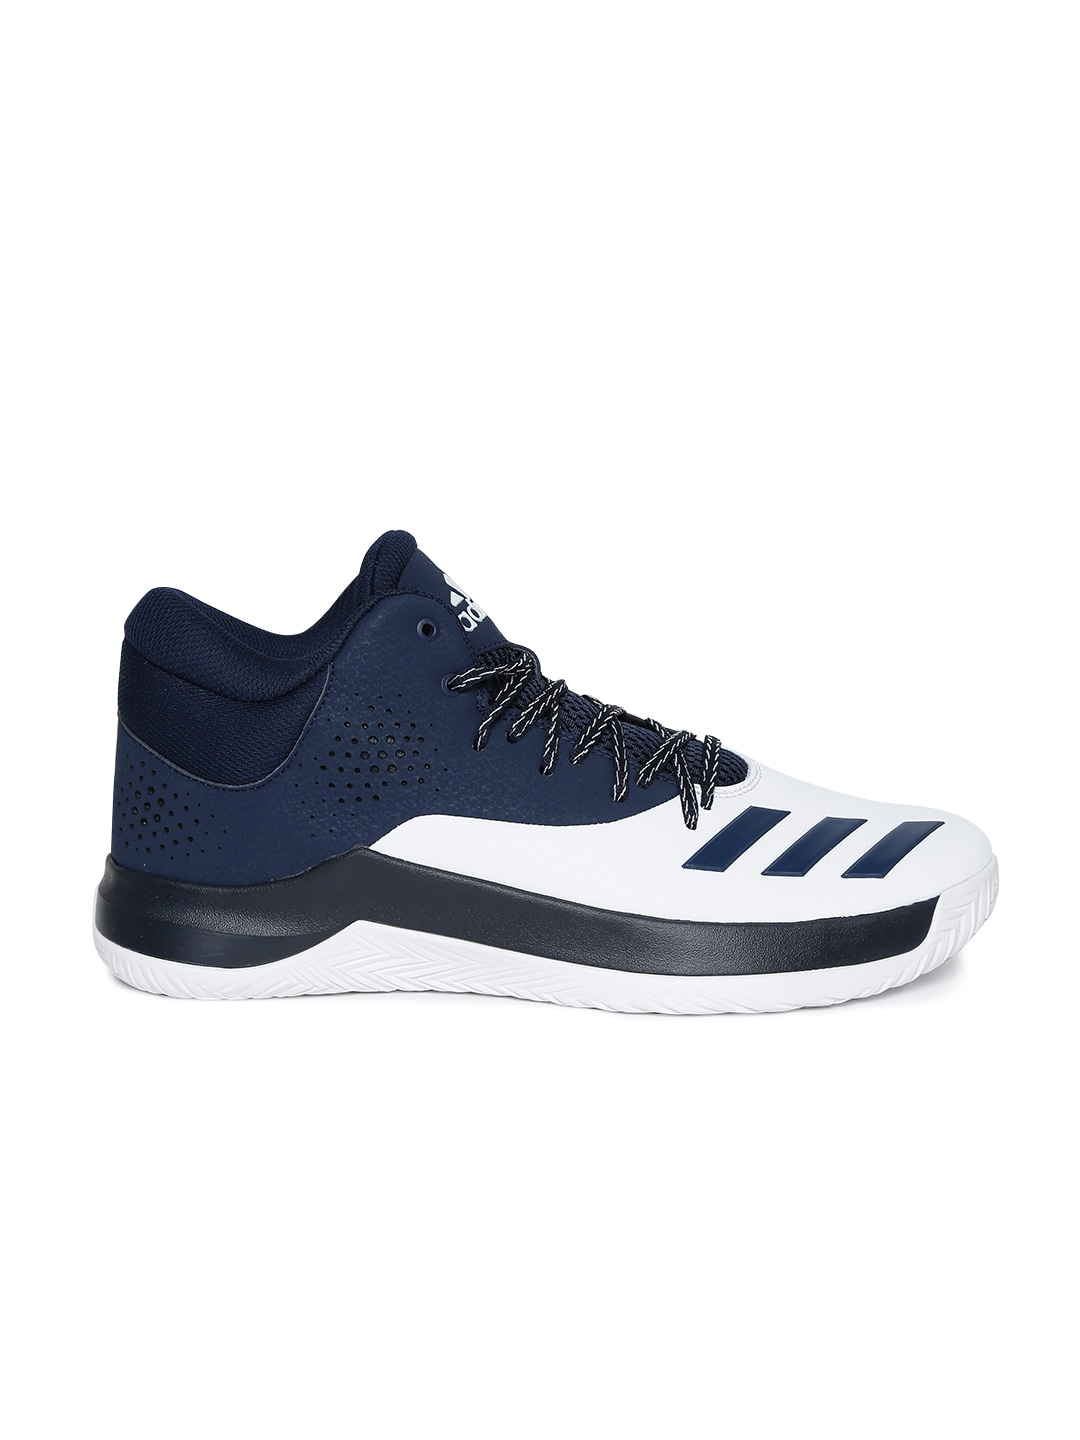 Basketball Shoes | Buy Basketball Shoes for Men \u0026 Women Online in India